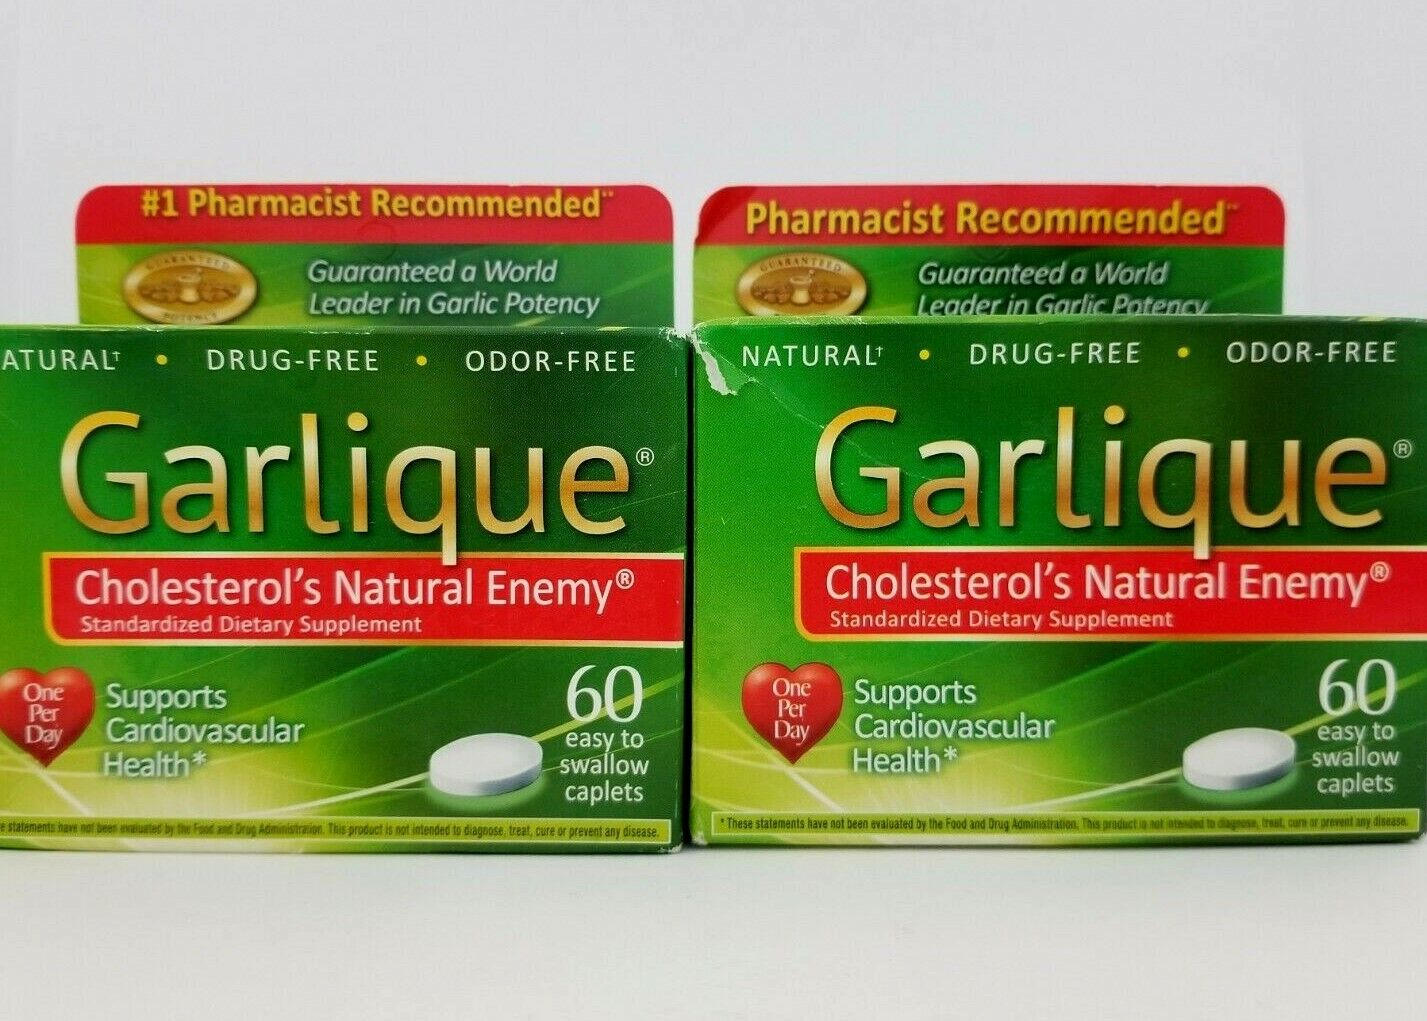 Garlique Cholesterol's Natural Enemy Cardiovascular Health 60 Caplets (2 Pack)